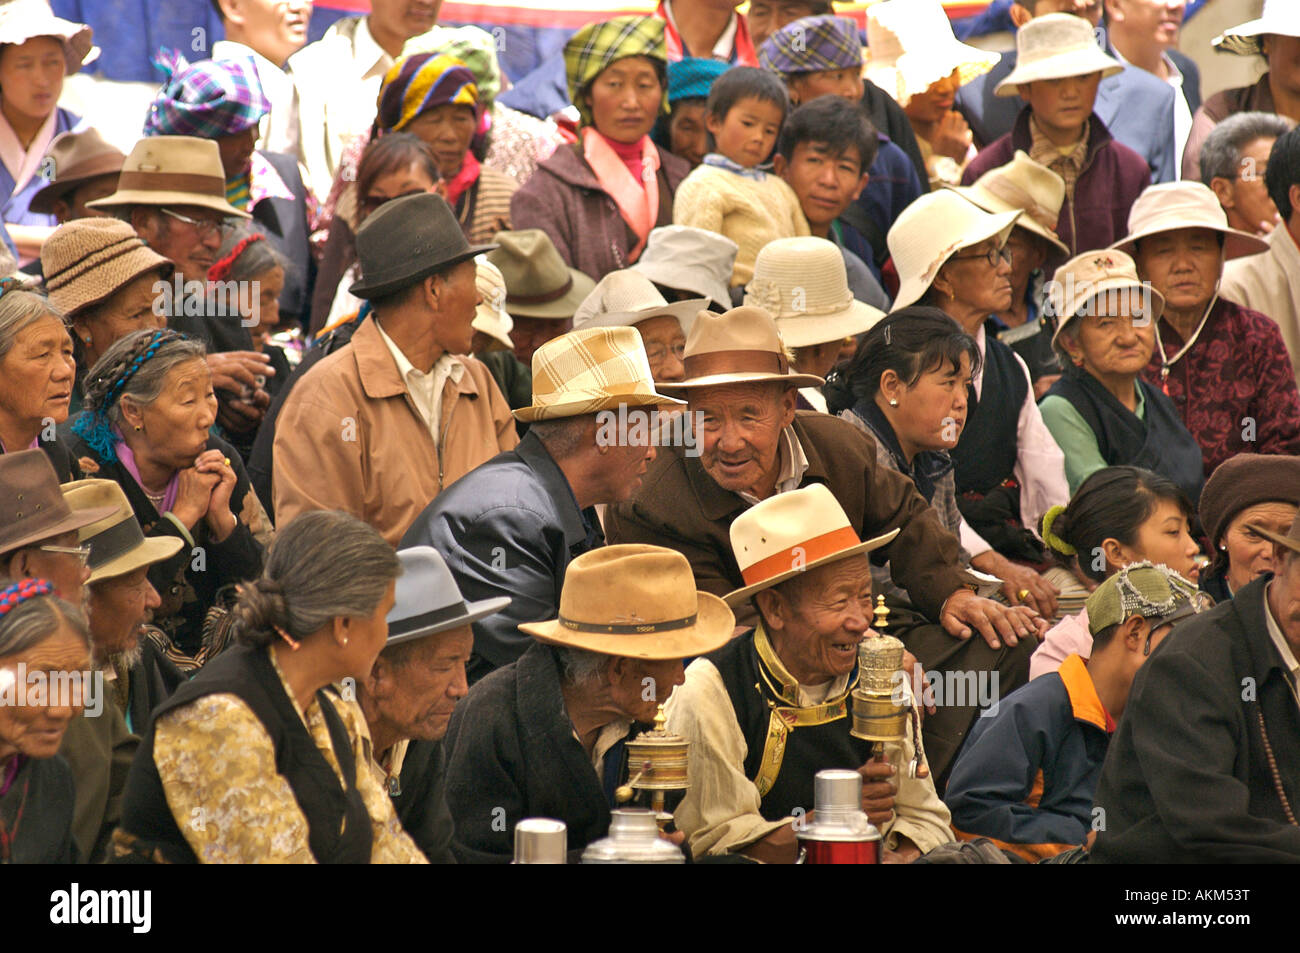 Crowd of Tibetans in a festive mood Shoton festival the Summer Palace Tibet - Stock Image